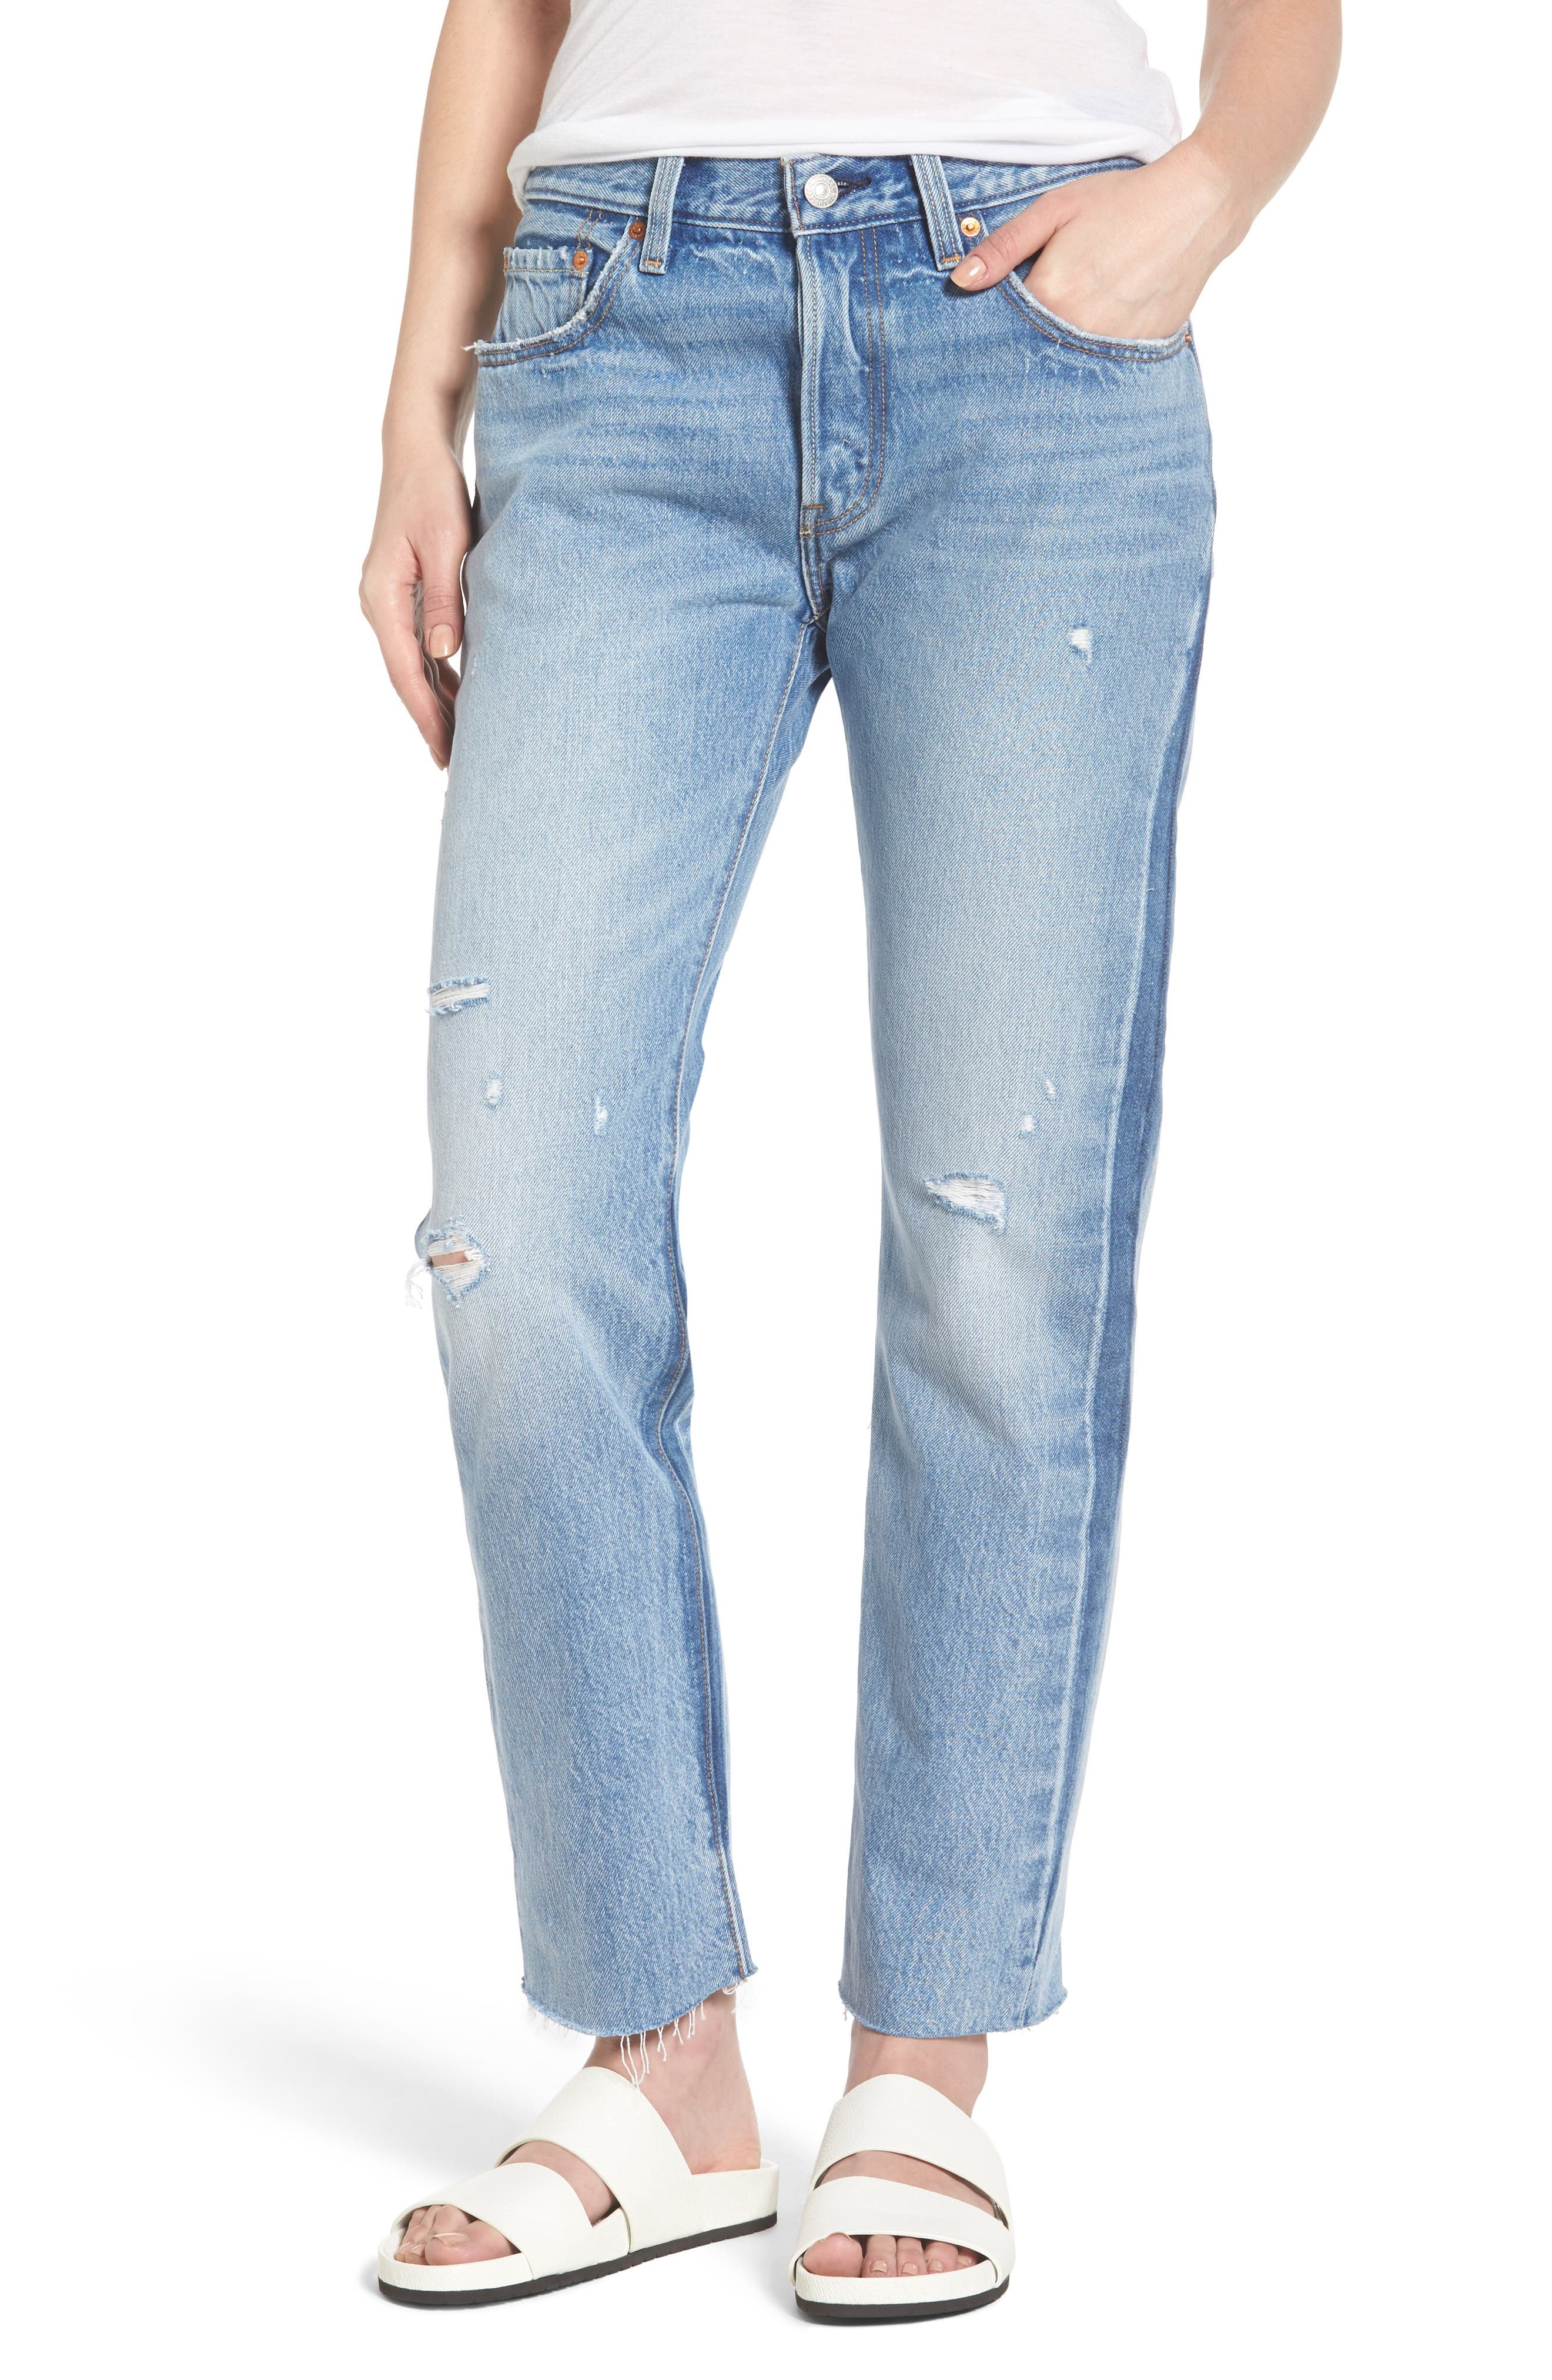 Main Image - Levi's® 501 Crop Jeans (You Pretty Thing)